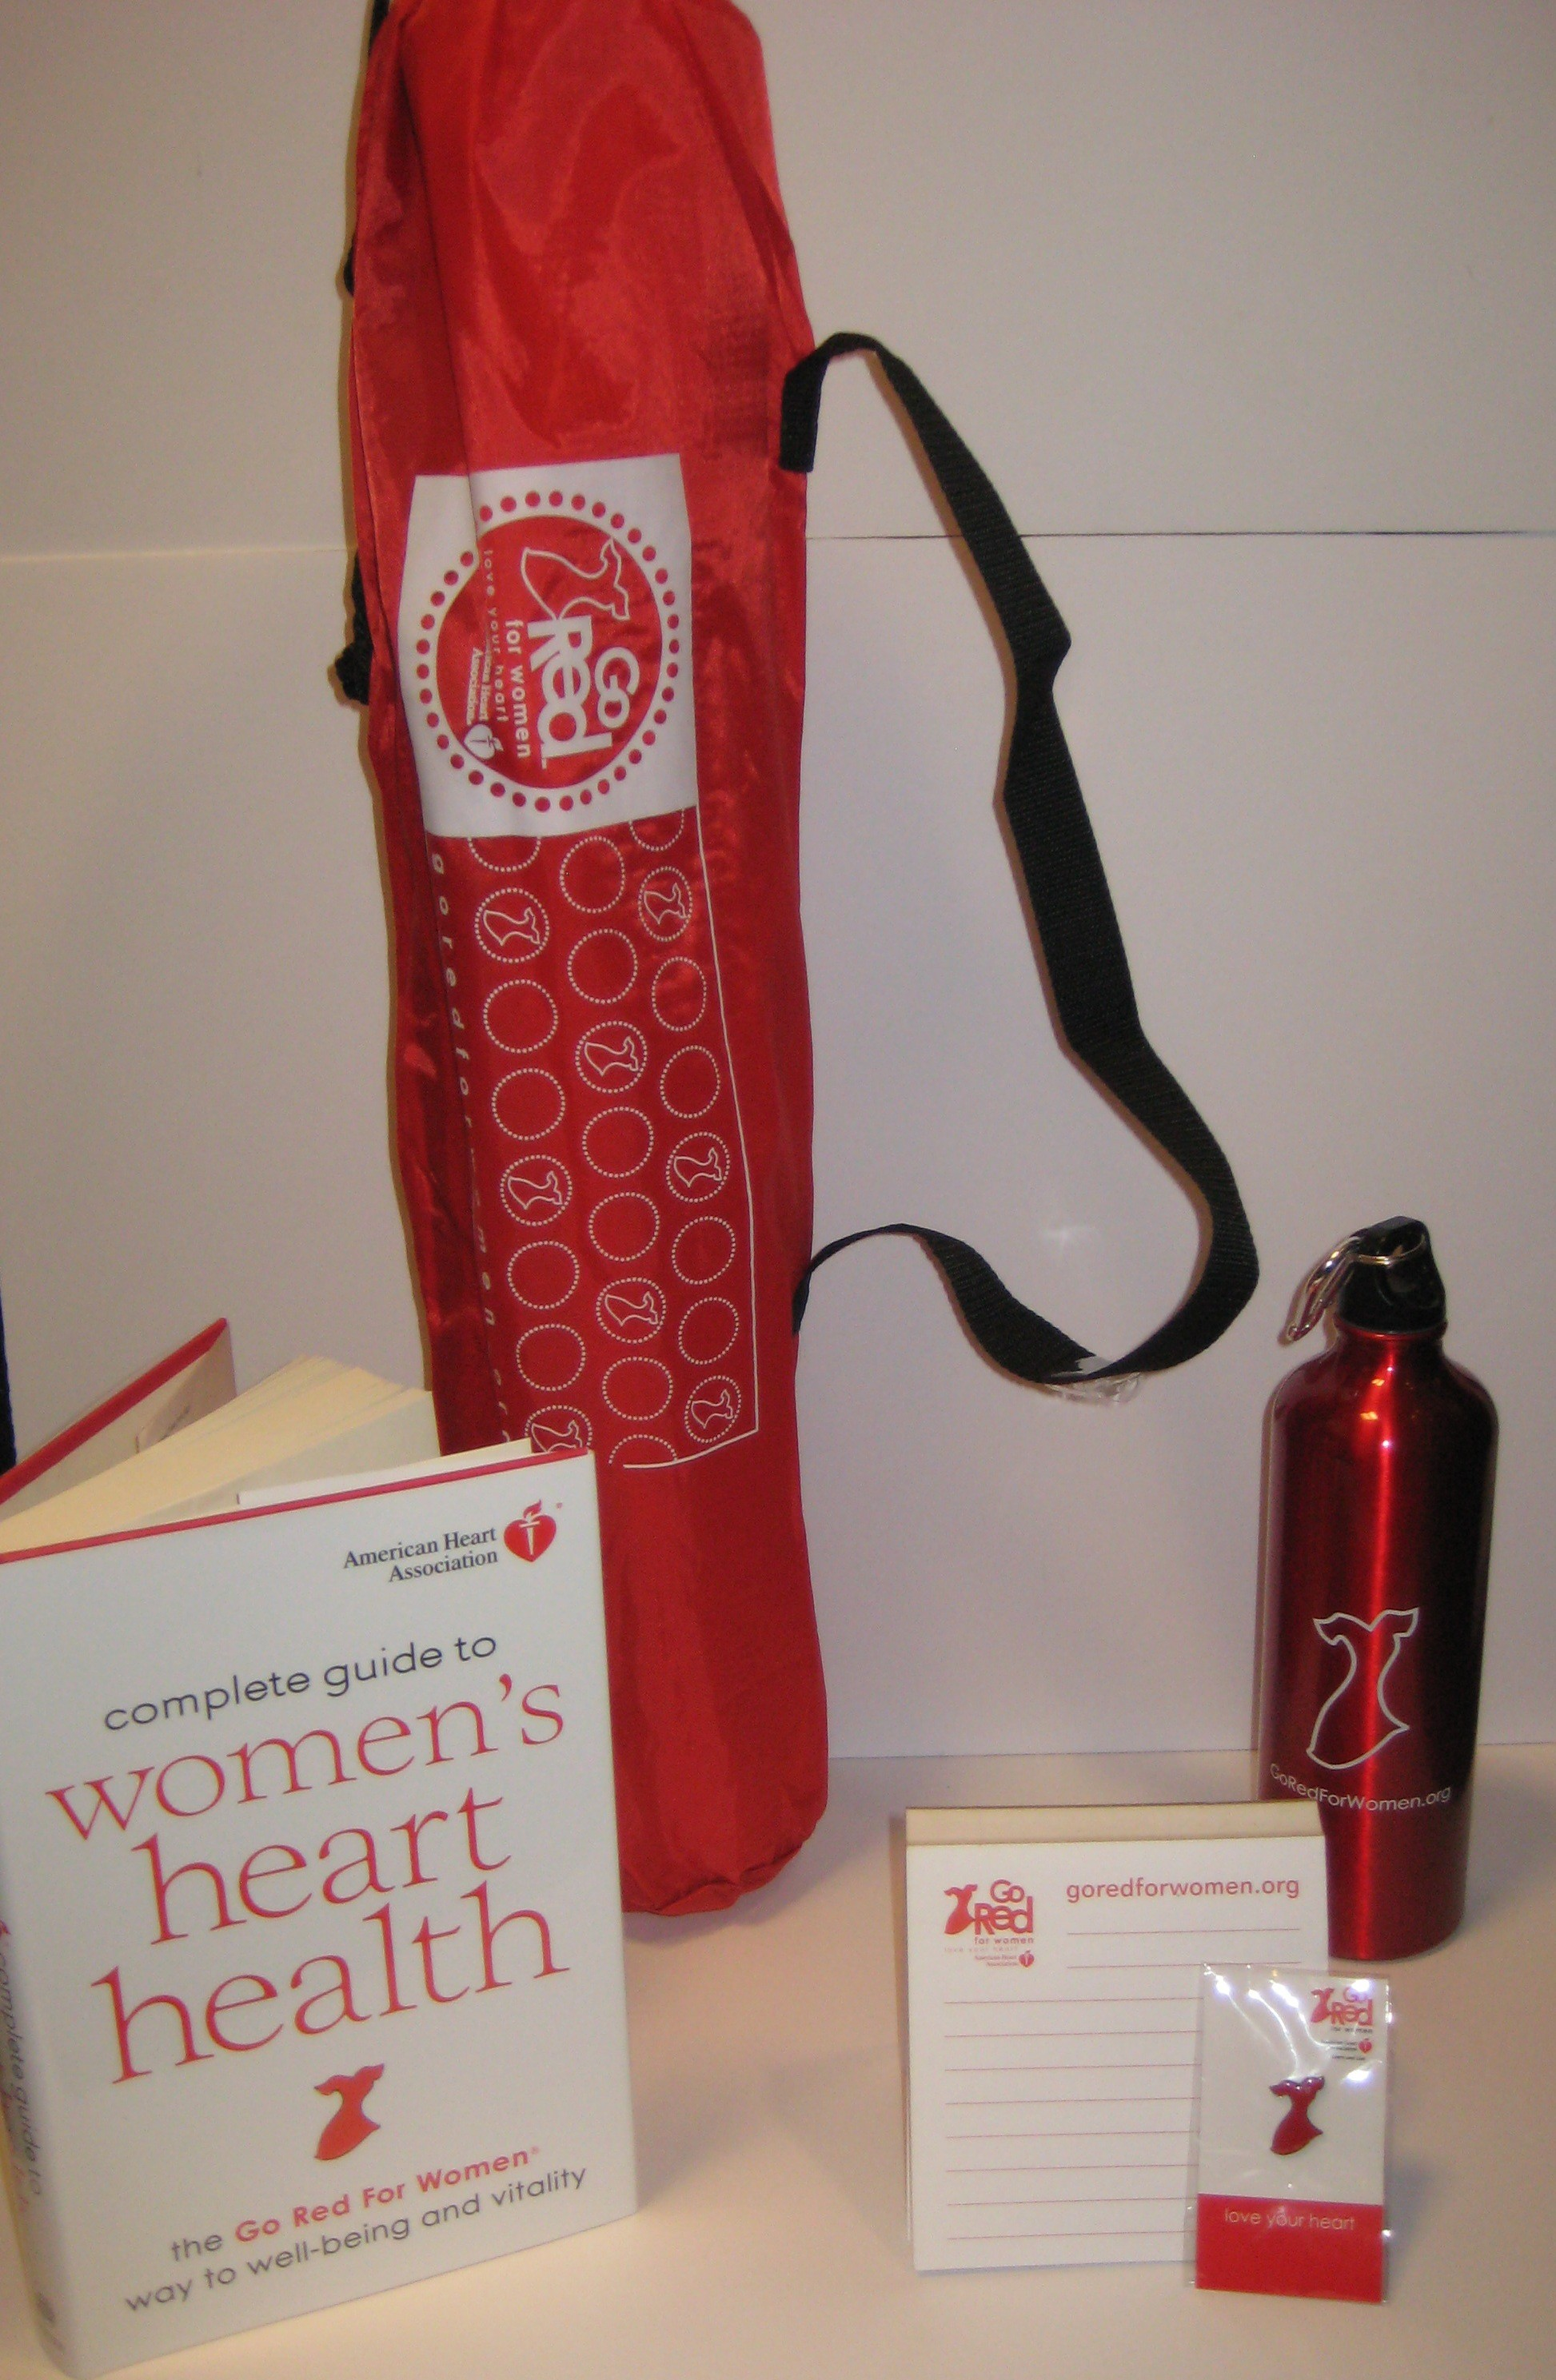 Share with us your favorite red thing in the comments below for your chance to win this Go Red package from the American Heart Association.